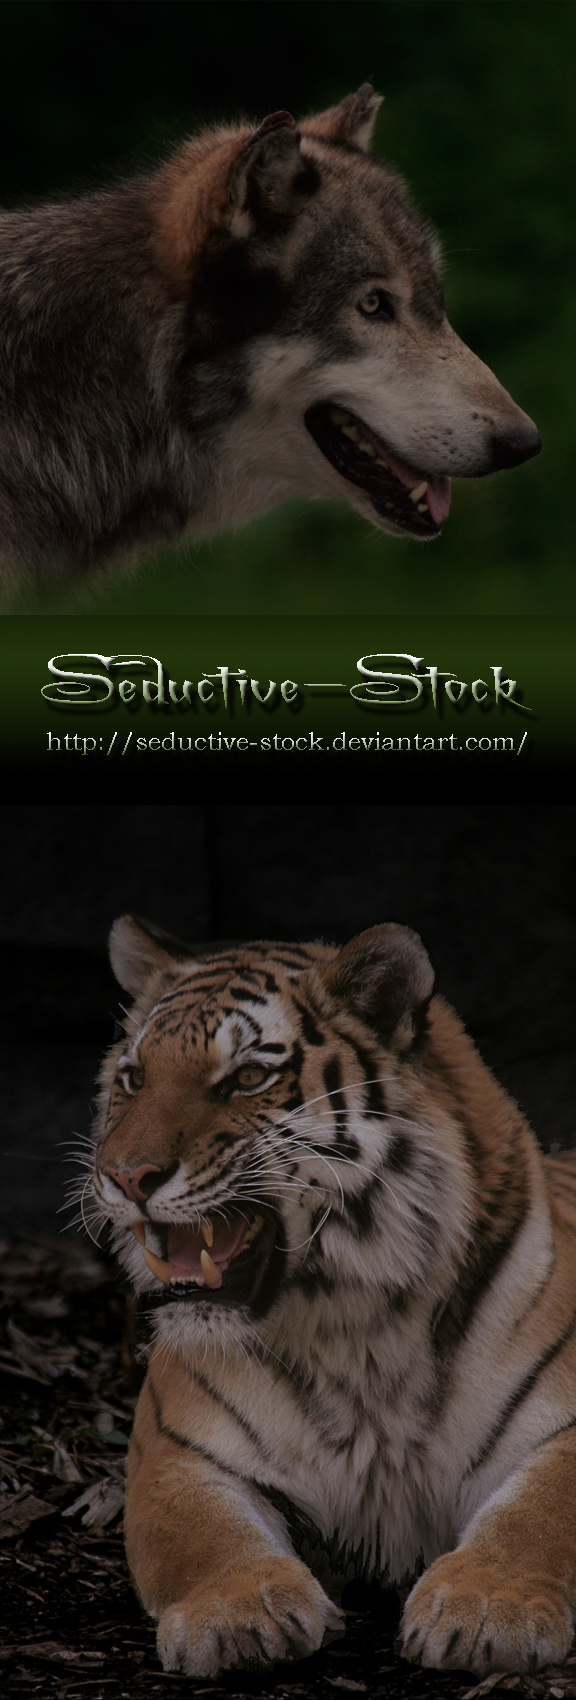 Seductive-Stock's Profile Picture